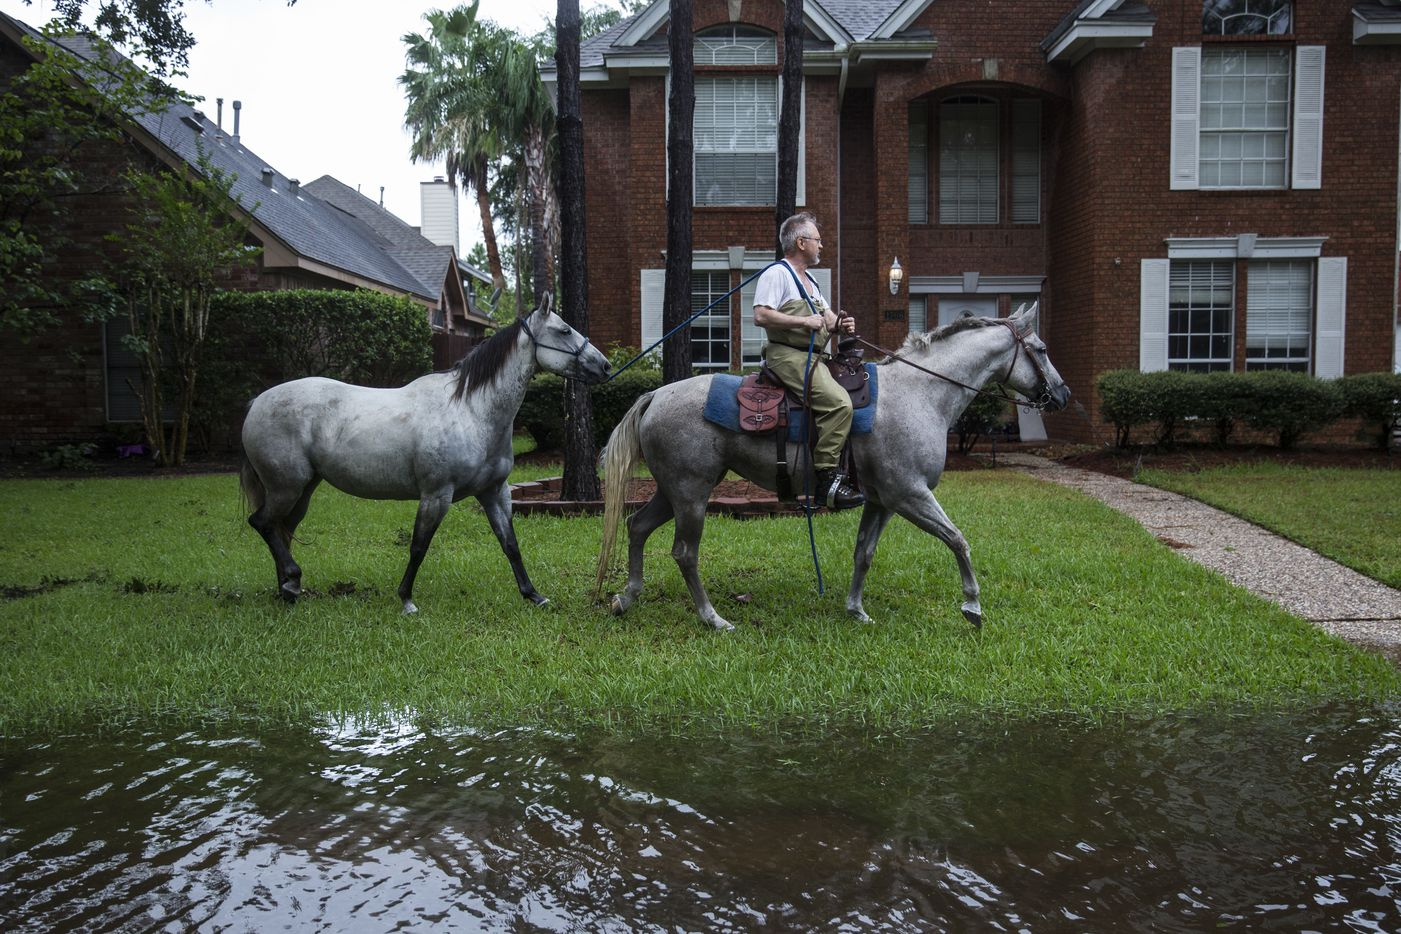 A man leads a horse through a neighborhood after the area became flooded in Houston, Aug. 29, 2017.